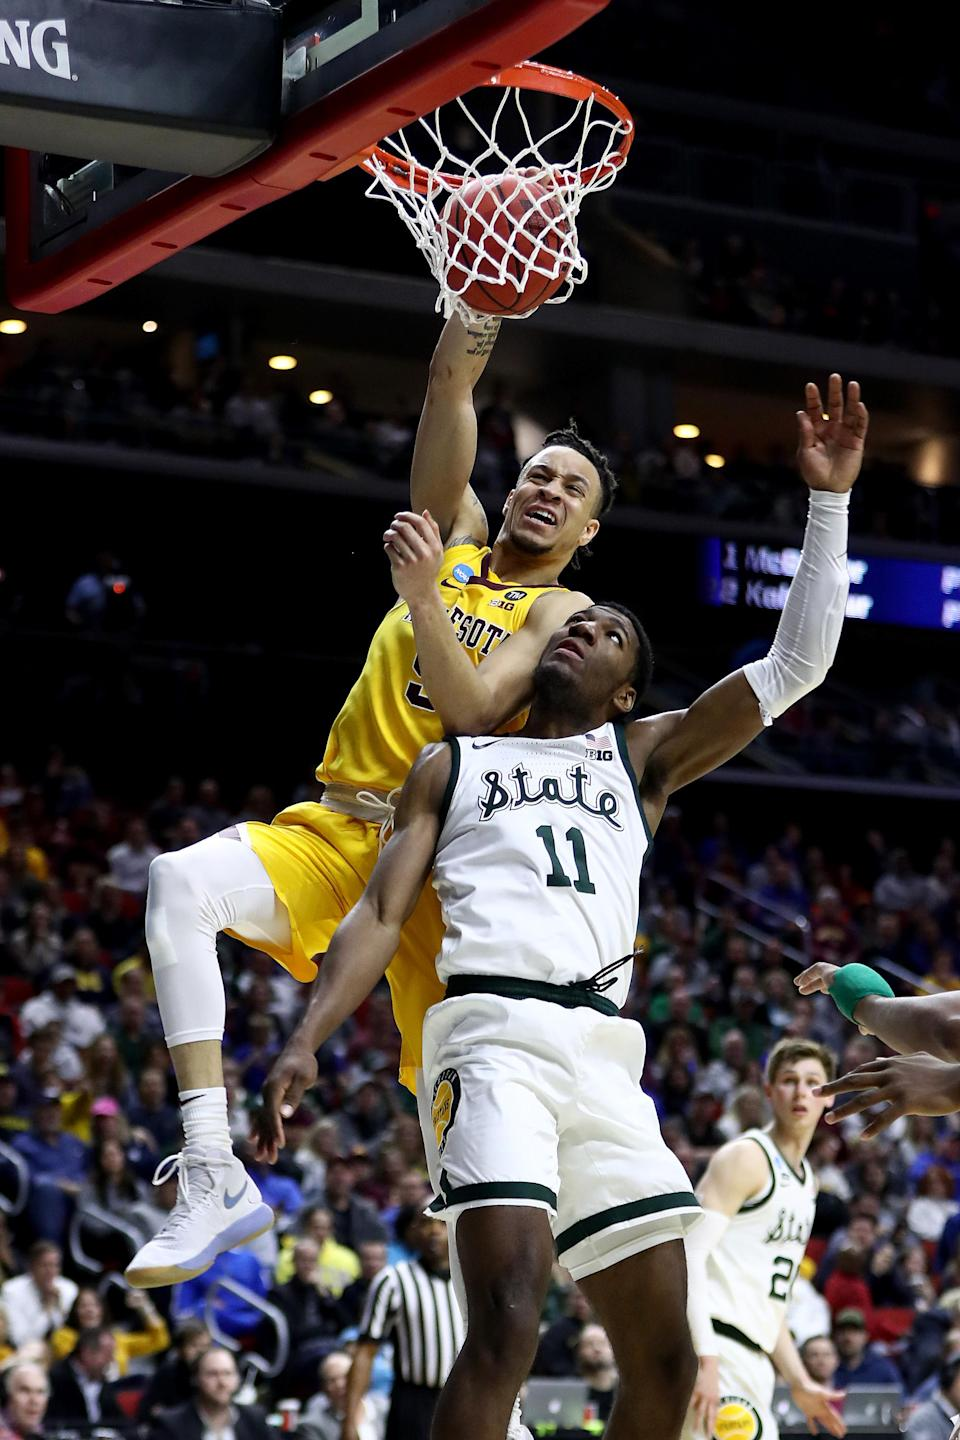 <p>Amir Coffey #5 of the Minnesota Golden Gophers dunks the ball against Aaron Henry #11 of the Michigan State Spartans during the first half in the second round game of the 2019 NCAA Men's Basketball Tournament at Wells Fargo Arena on March 23, 2019 in Des Moines, Iowa. (Photo by Jamie Squire/Getty Images) </p>